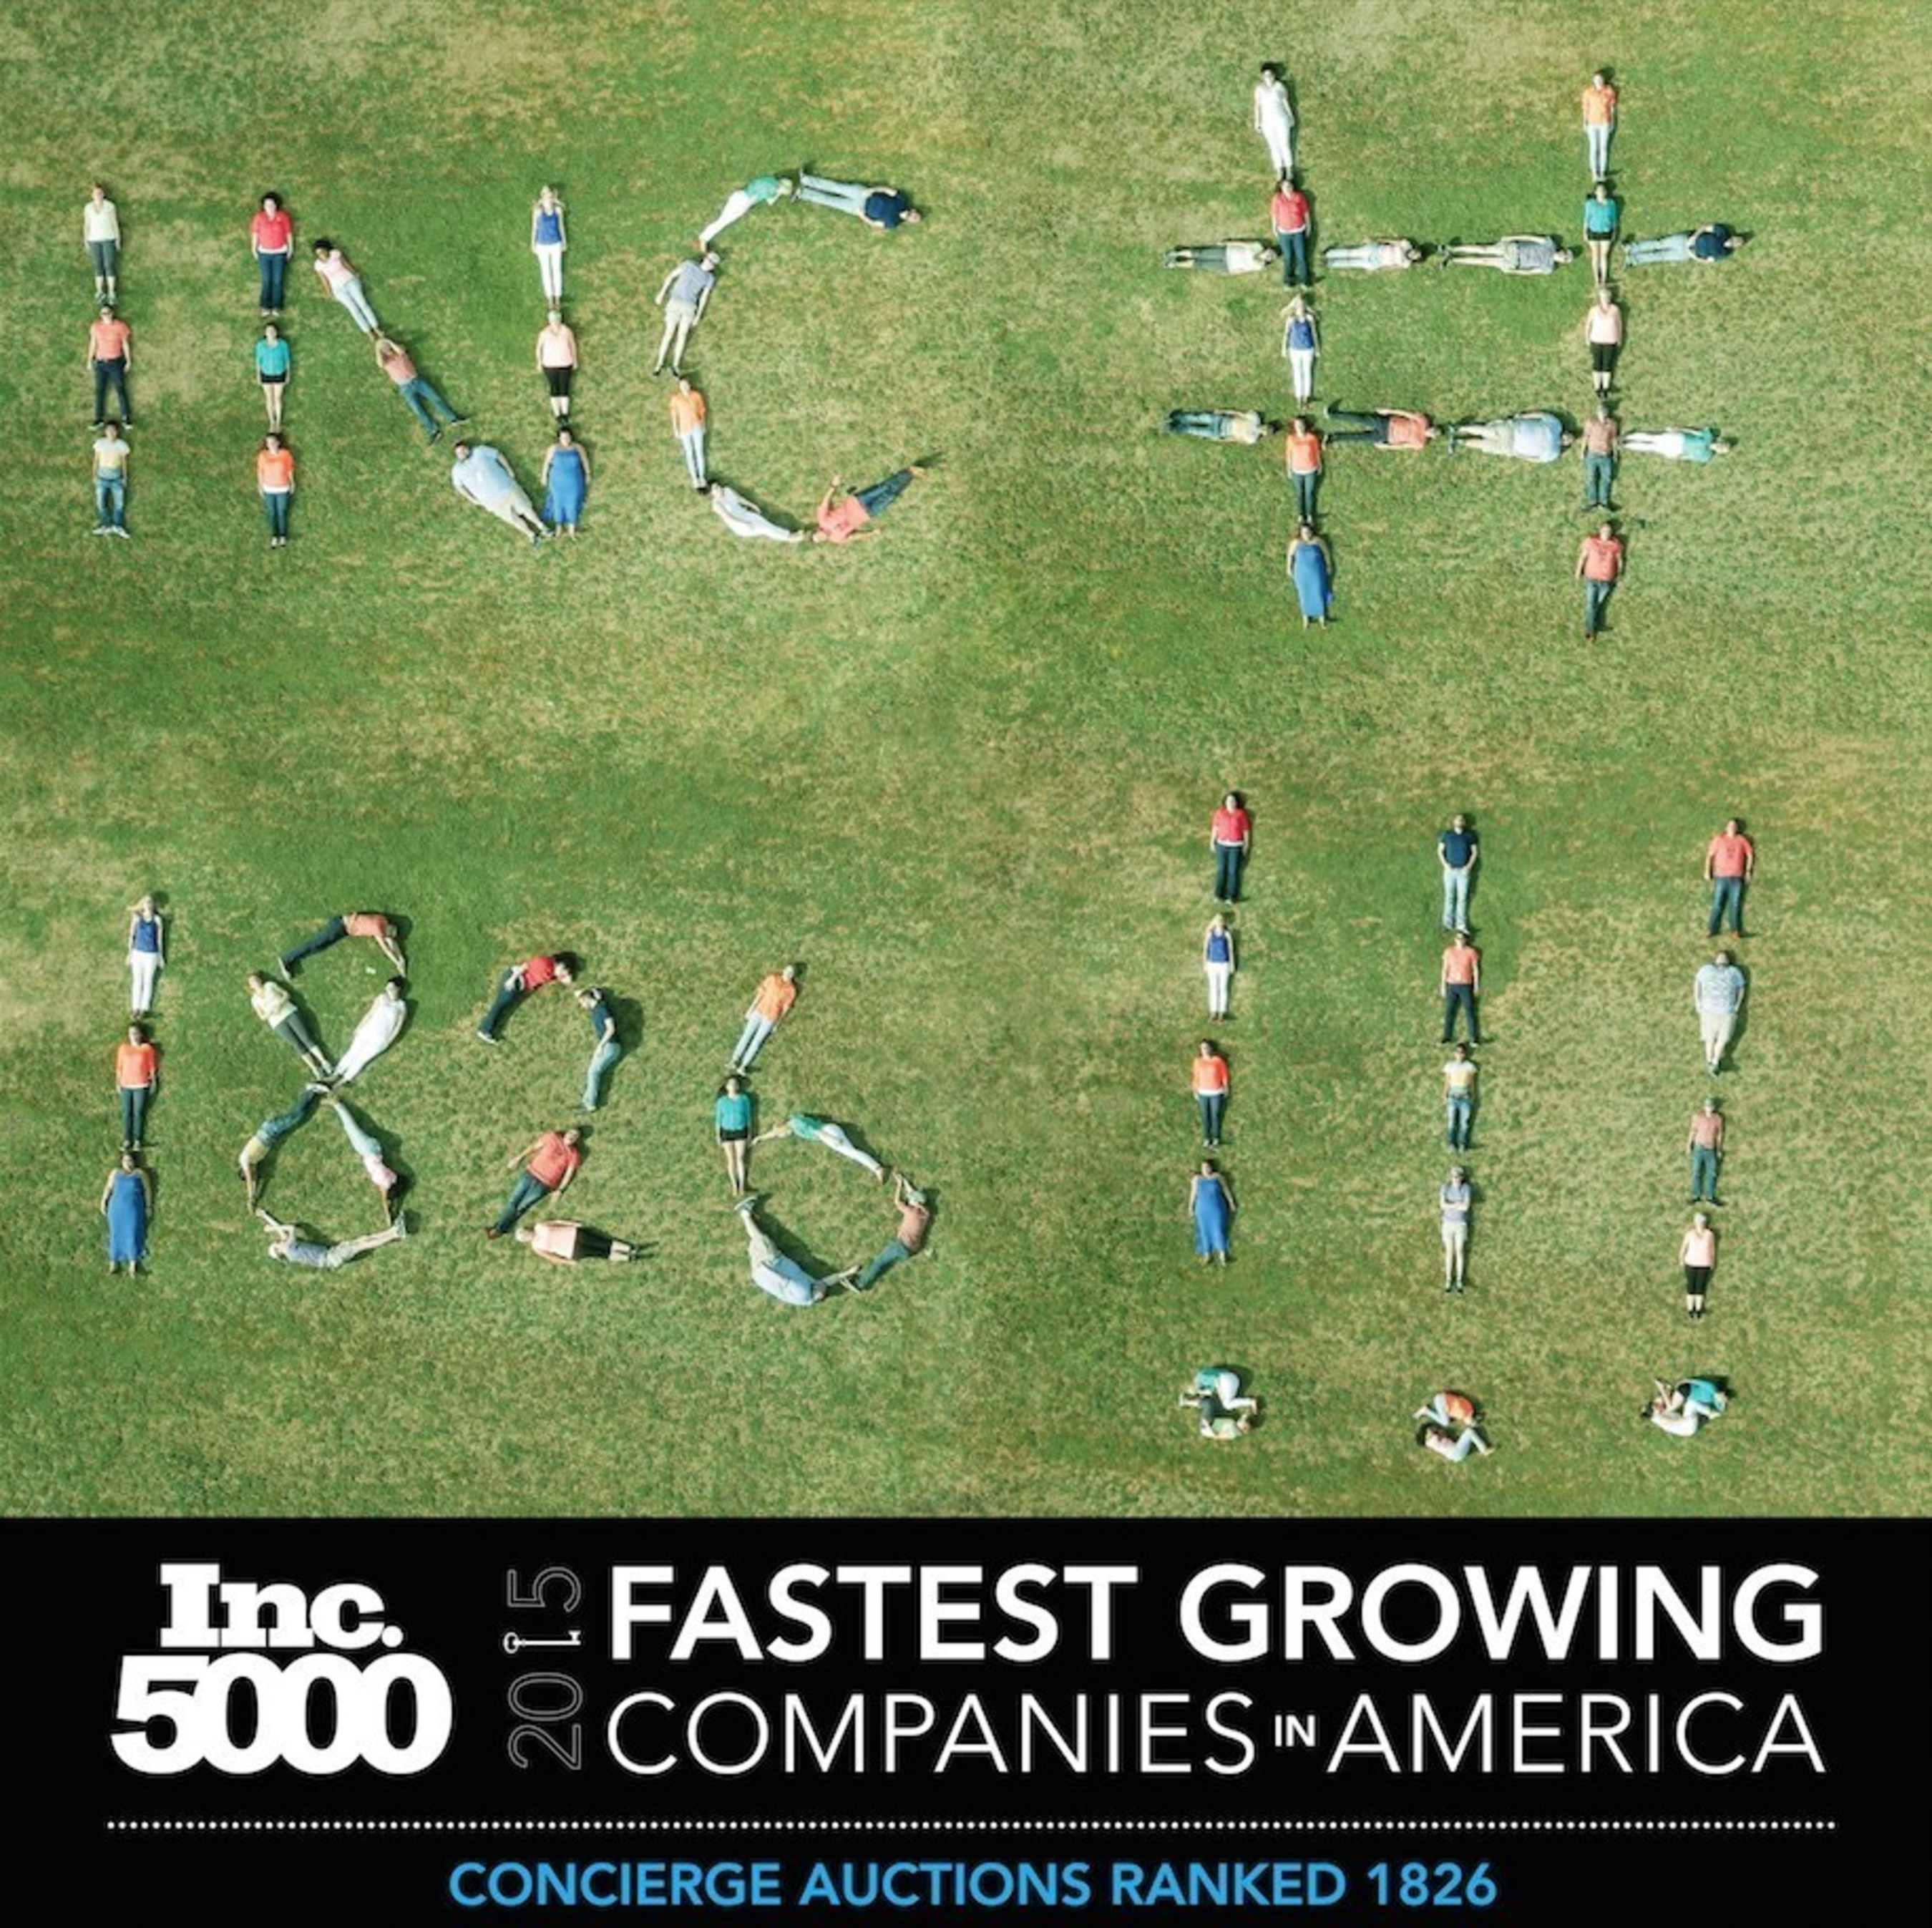 Inc. Magazine Names Concierge Auctions One Of America's Fastest Growing Companies For The Second